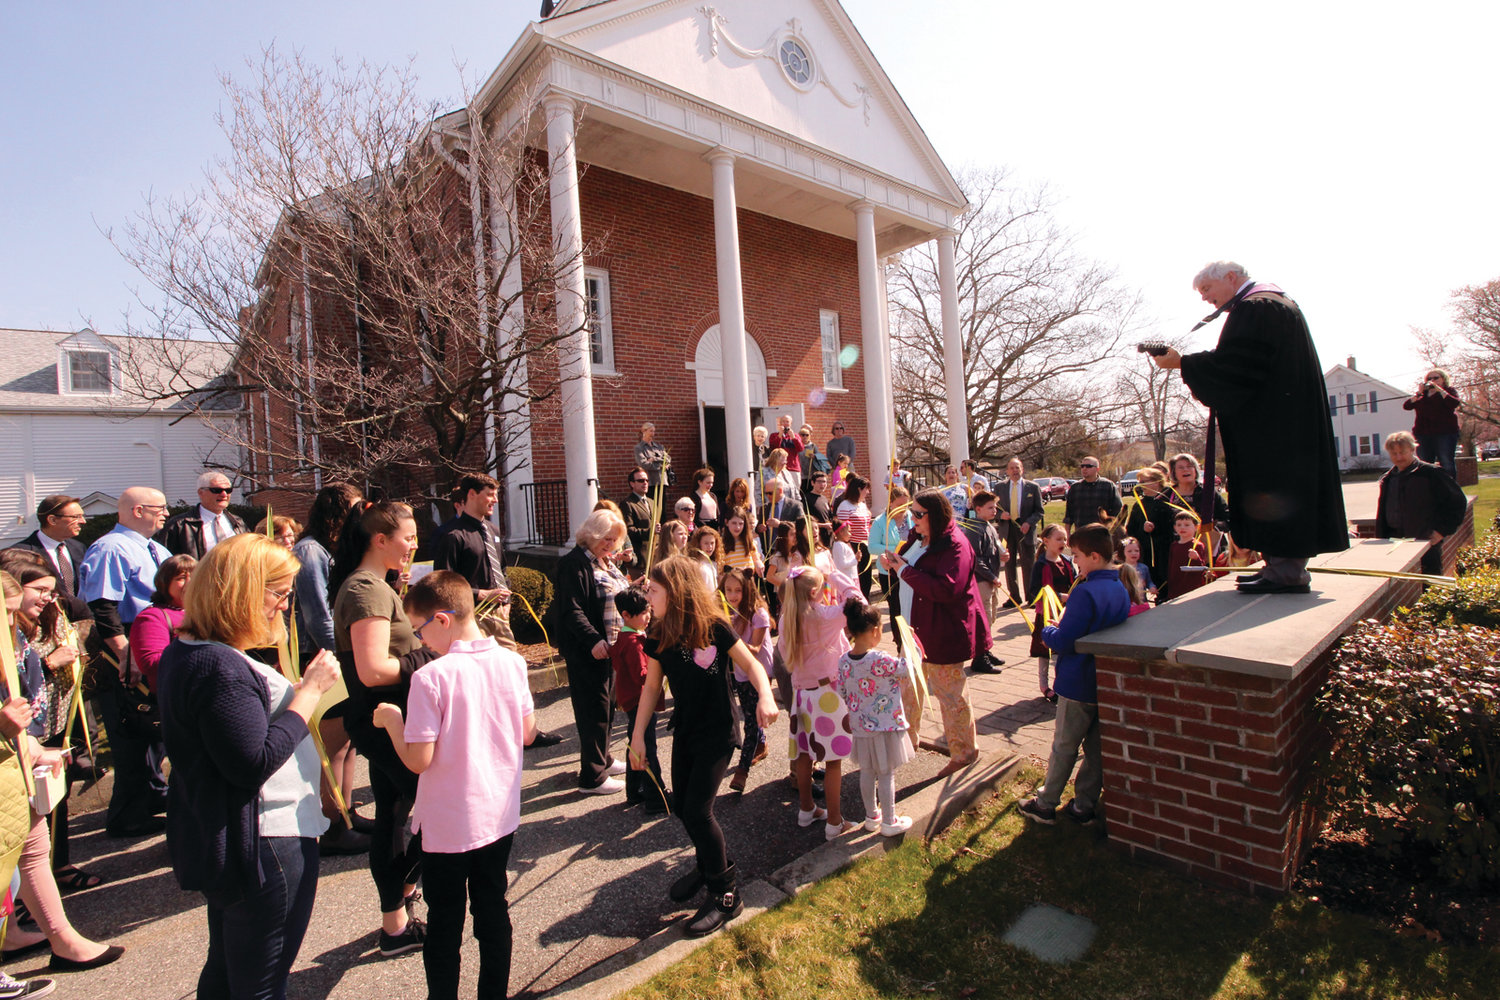 THE JOY OF THE SEASON: Pastor Stephen Clark leads the congregation in song outside Greenwood Community Church, Presbyterian.